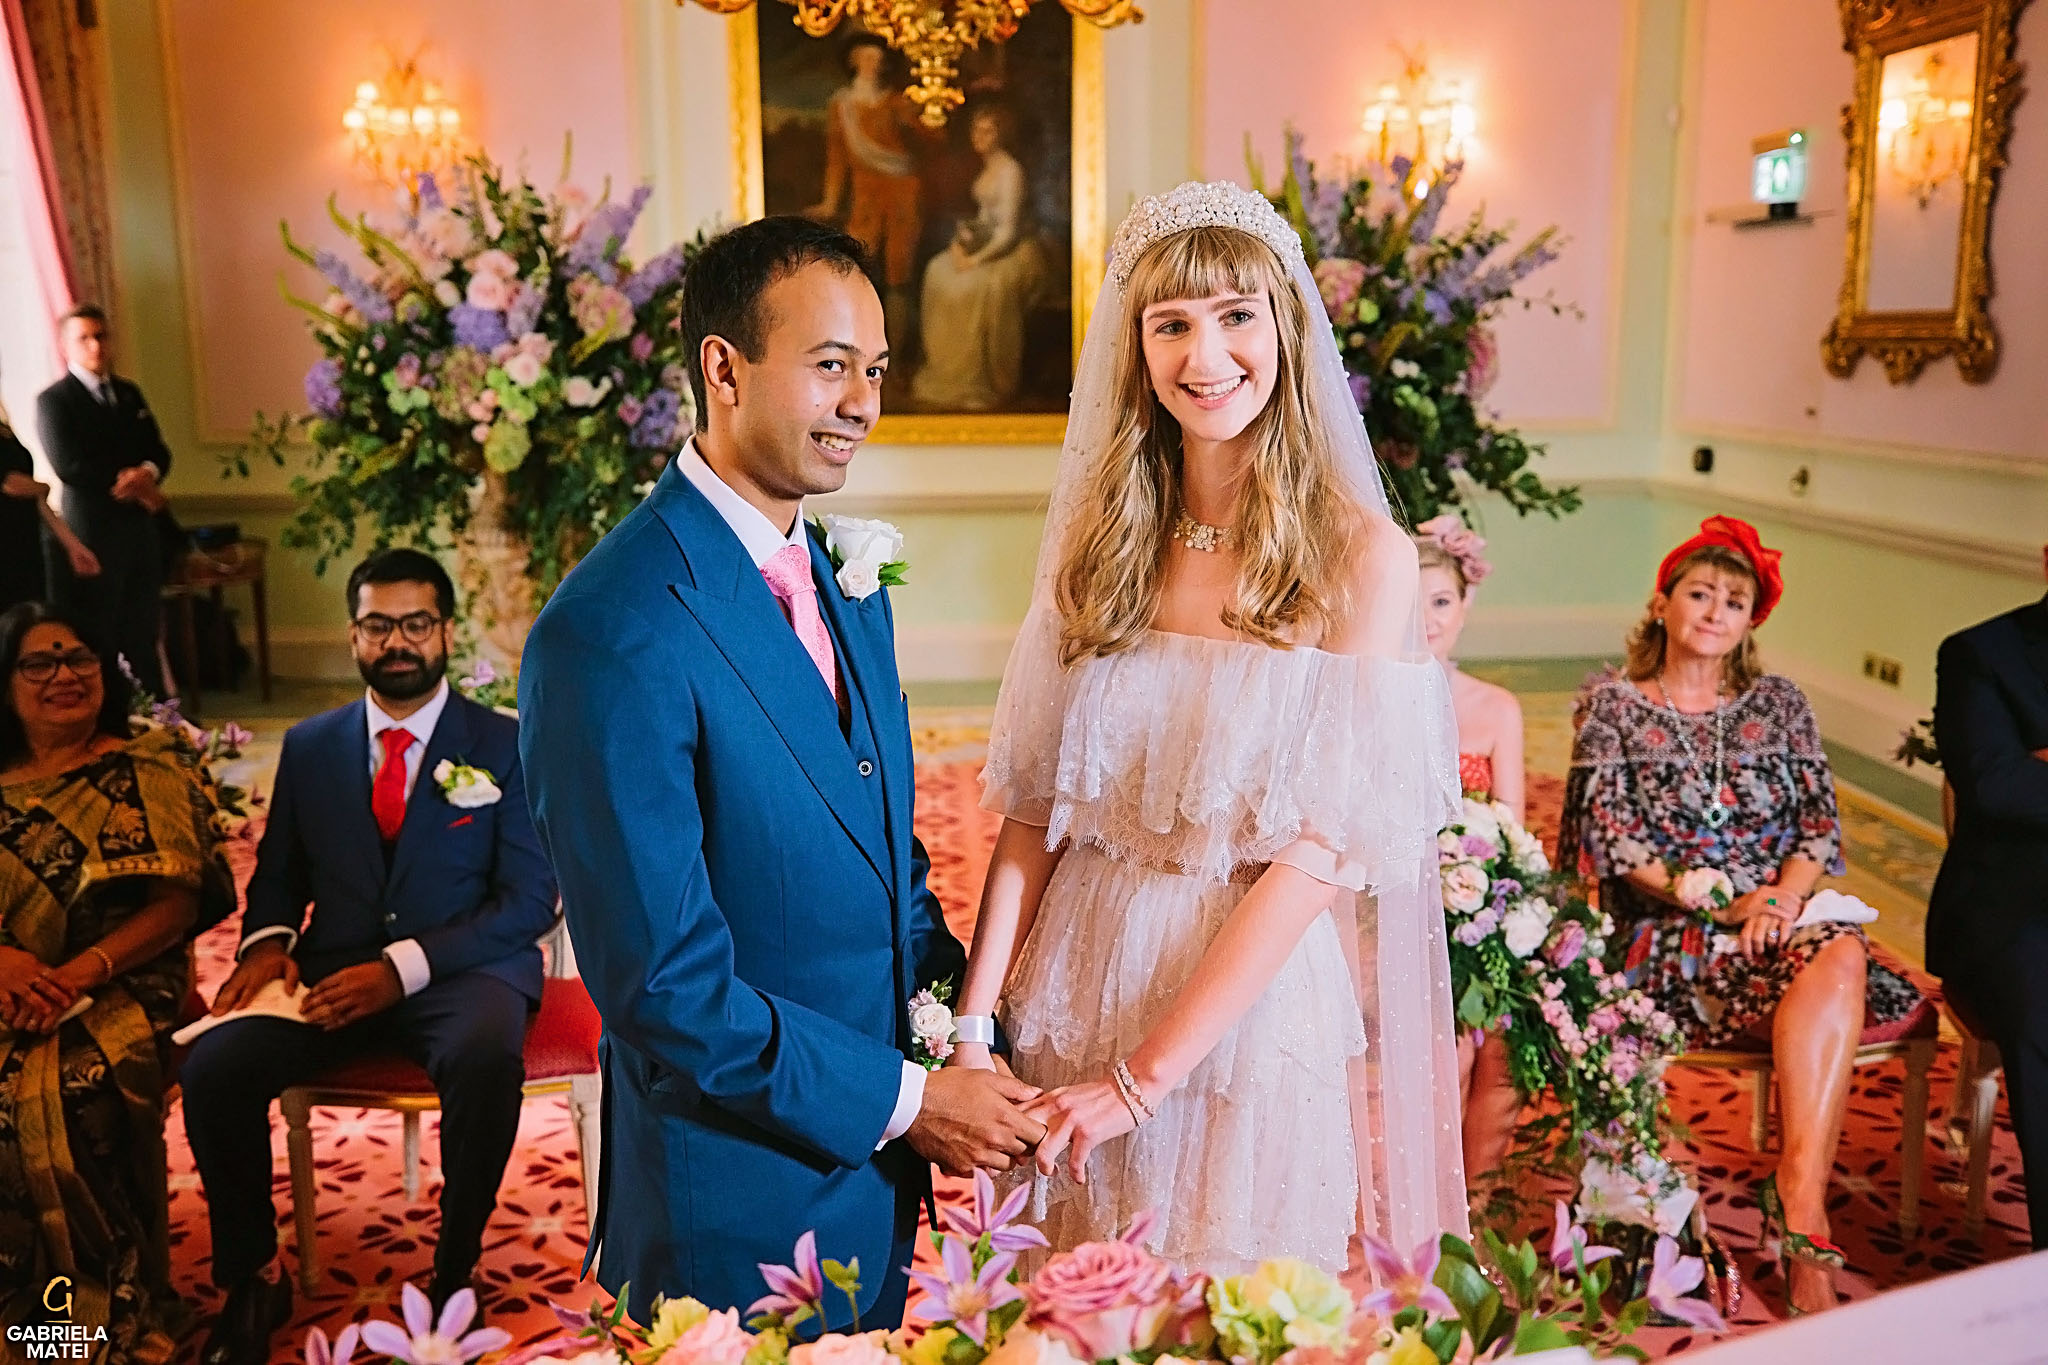 Bride and groom holding hands and looking towards the registrar during civil wedding in the Music Room at The Ritz Hotel in London